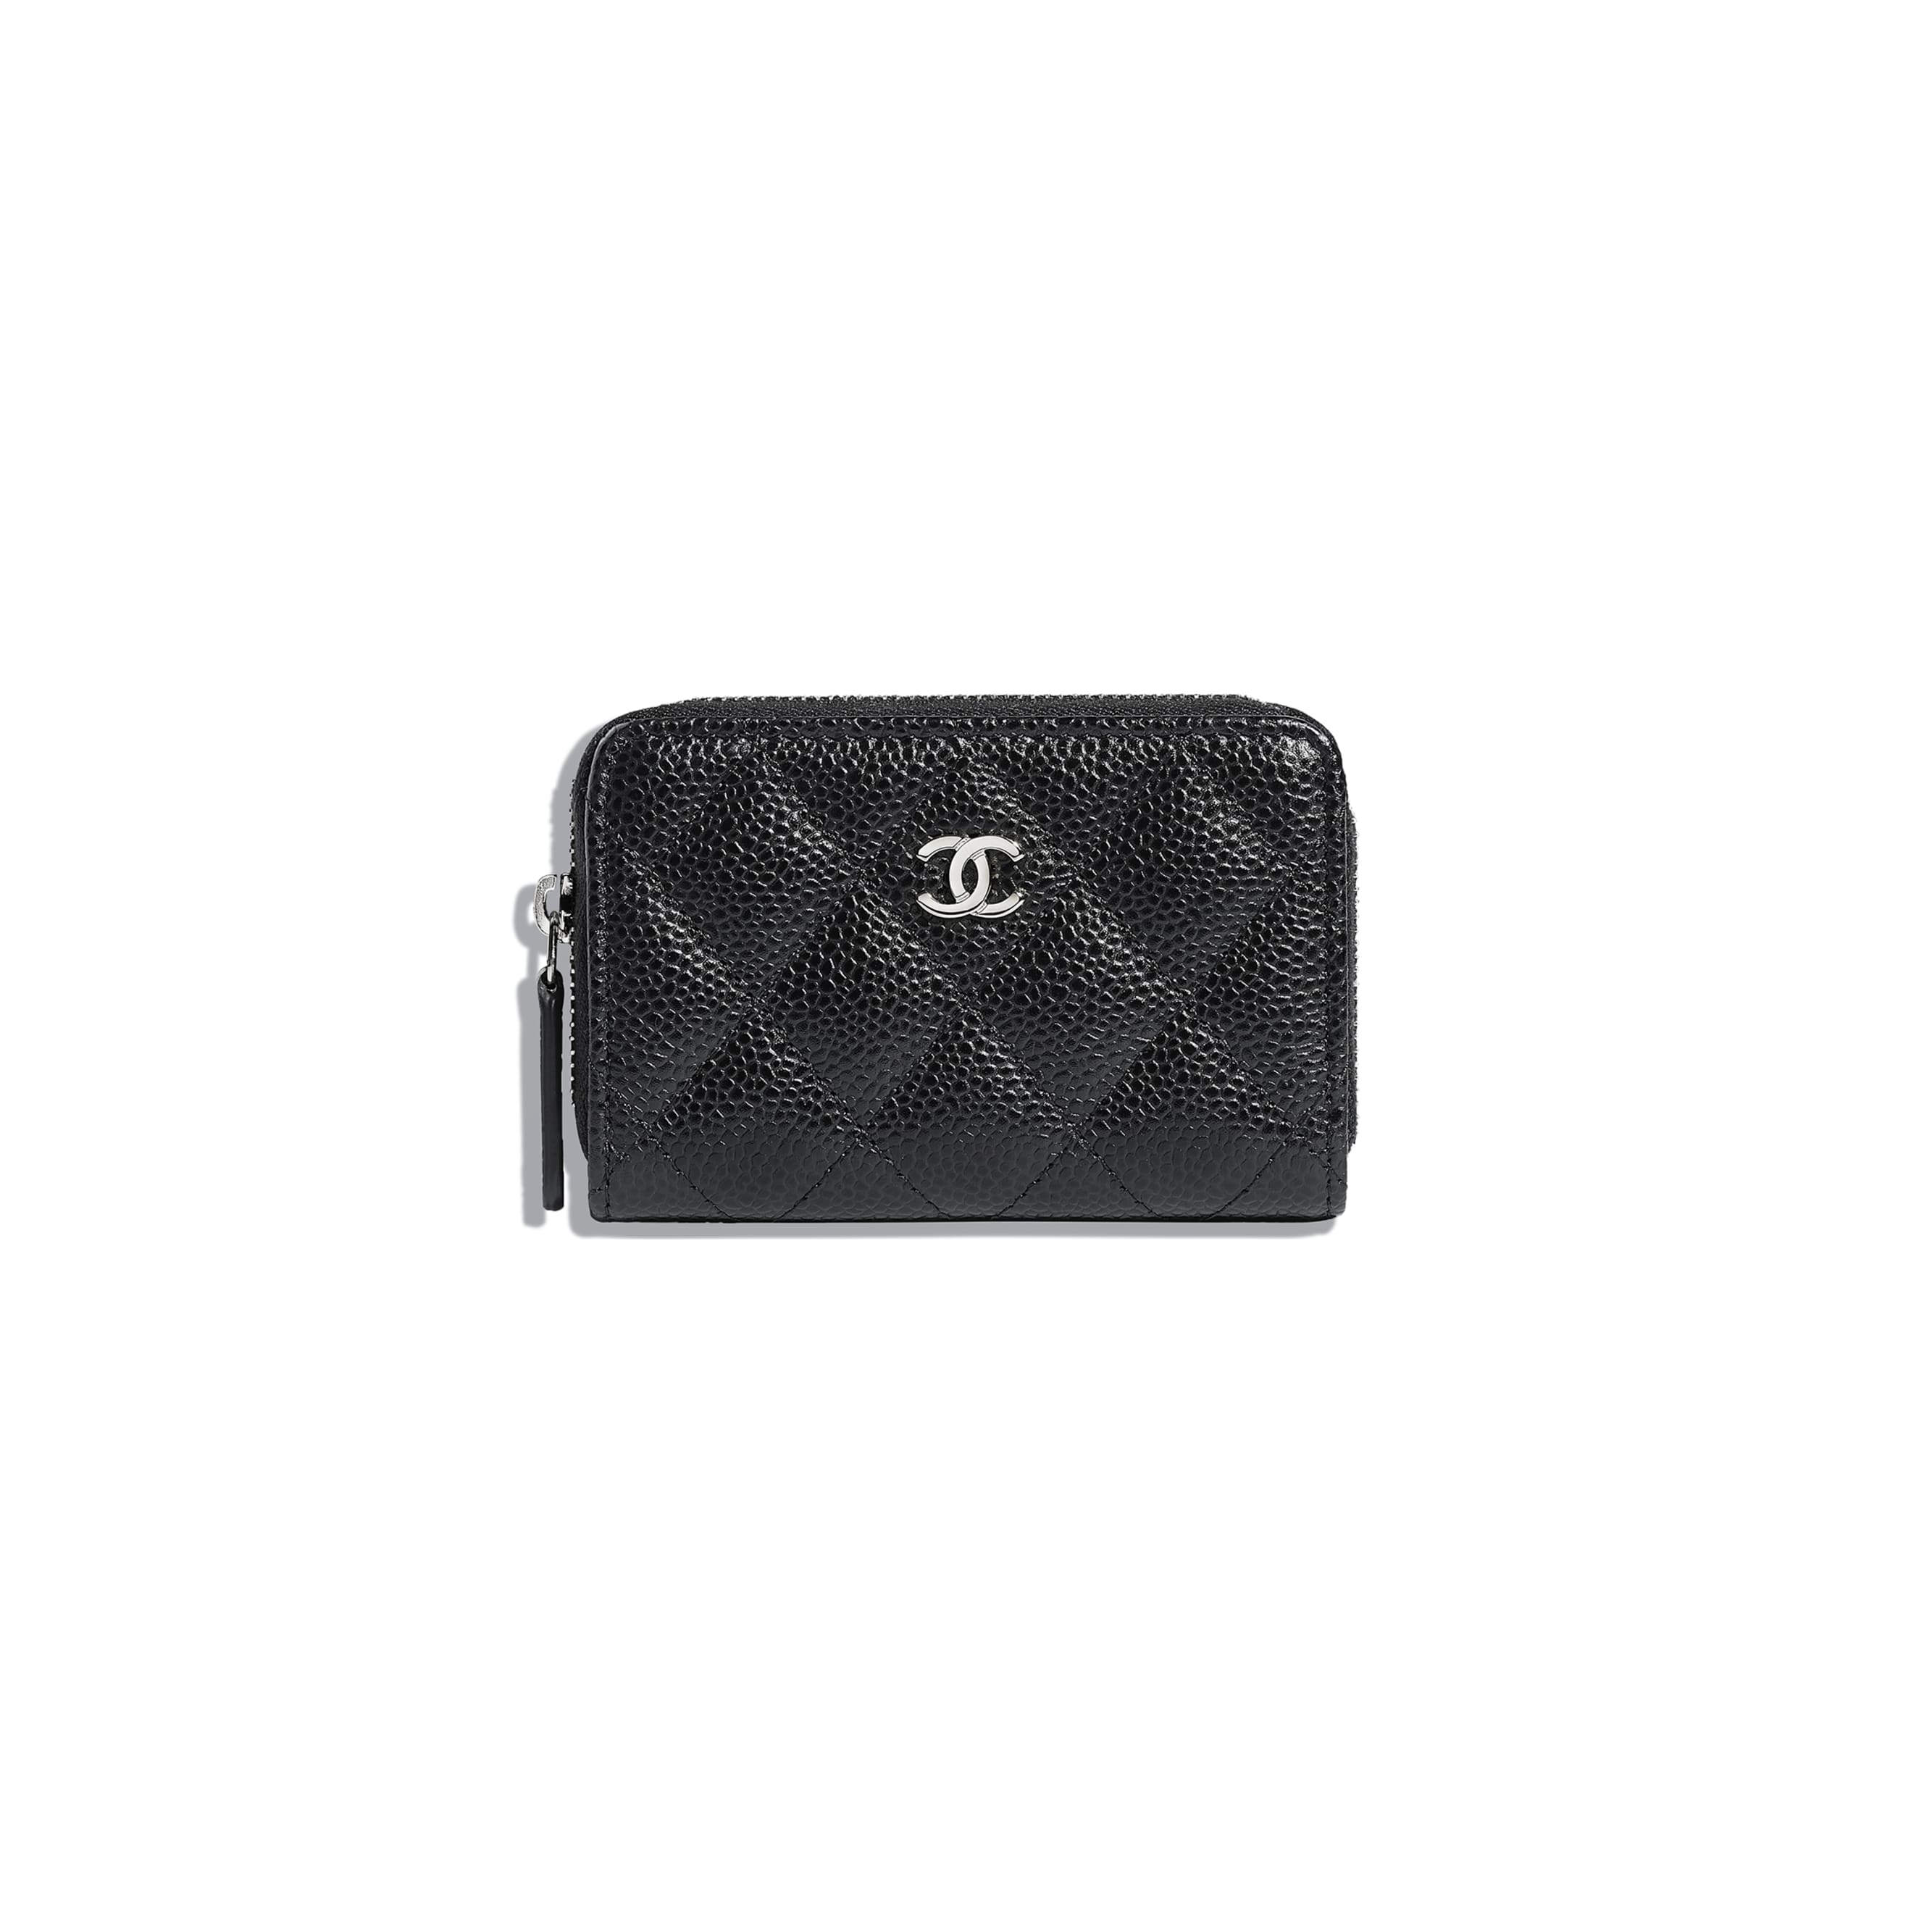 Classic Zipped Coin Purse - Black - Grained Calfskin & Silver-Tone Metal - Default view - see standard sized version